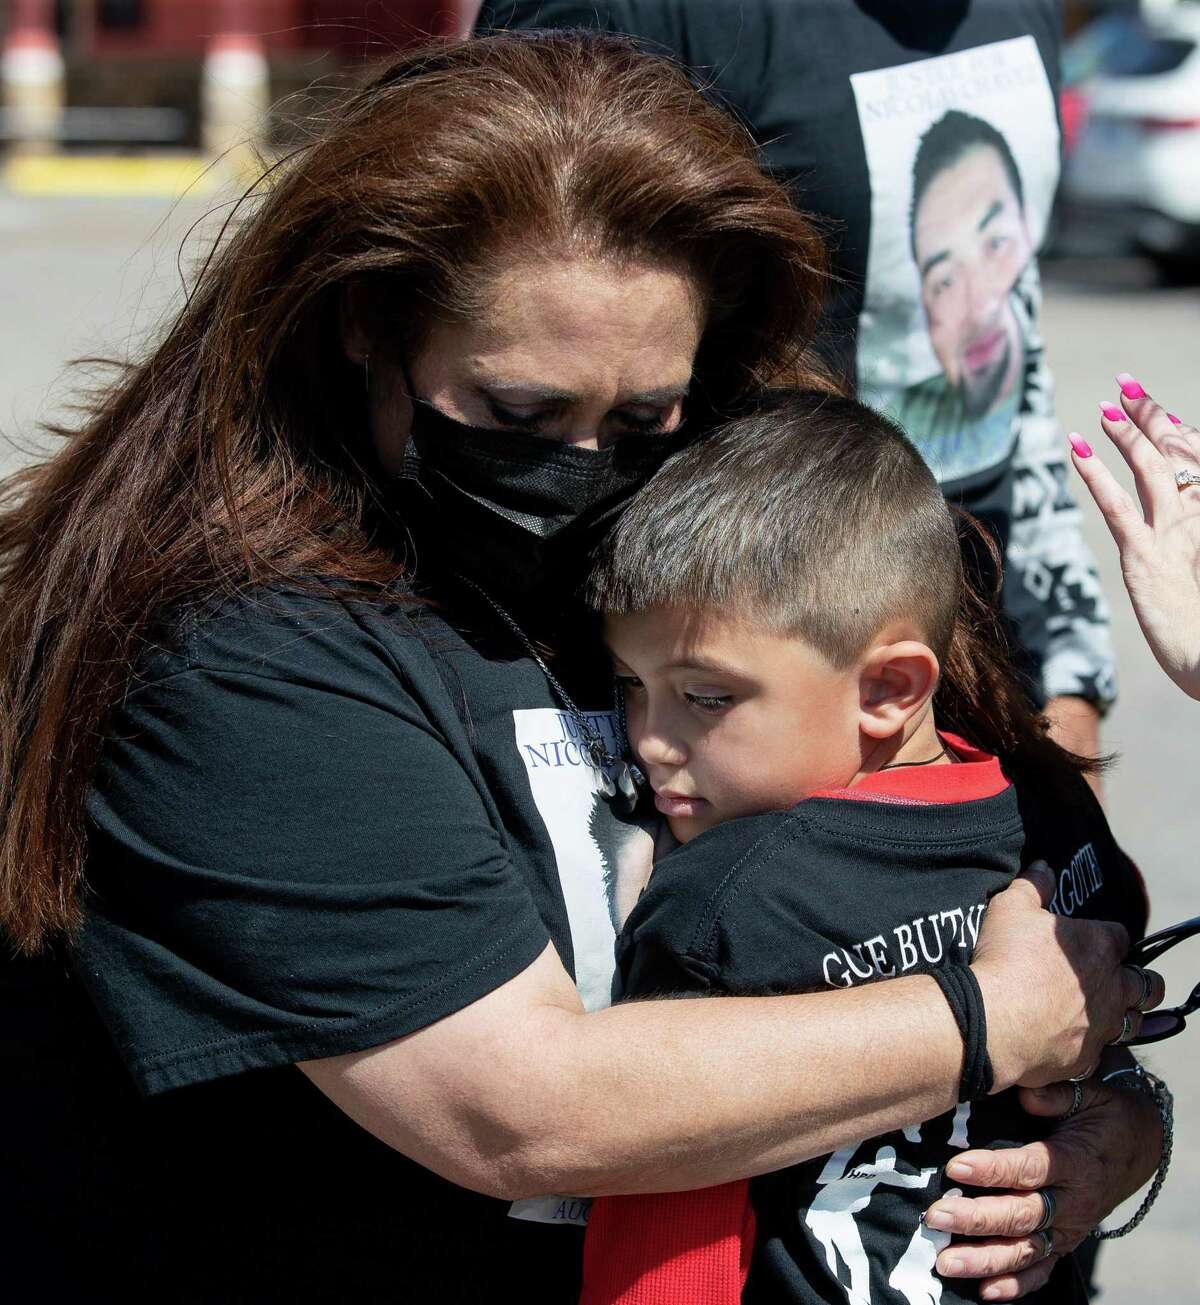 Leantha Chavez hugs her grandson Nicolas Chavez Jr., 6, during a cookout to mark one year since her son, Nicolas Chavez, was fatally shot by Houston Police, on Wednesday, April 21, 2021, in Houston.